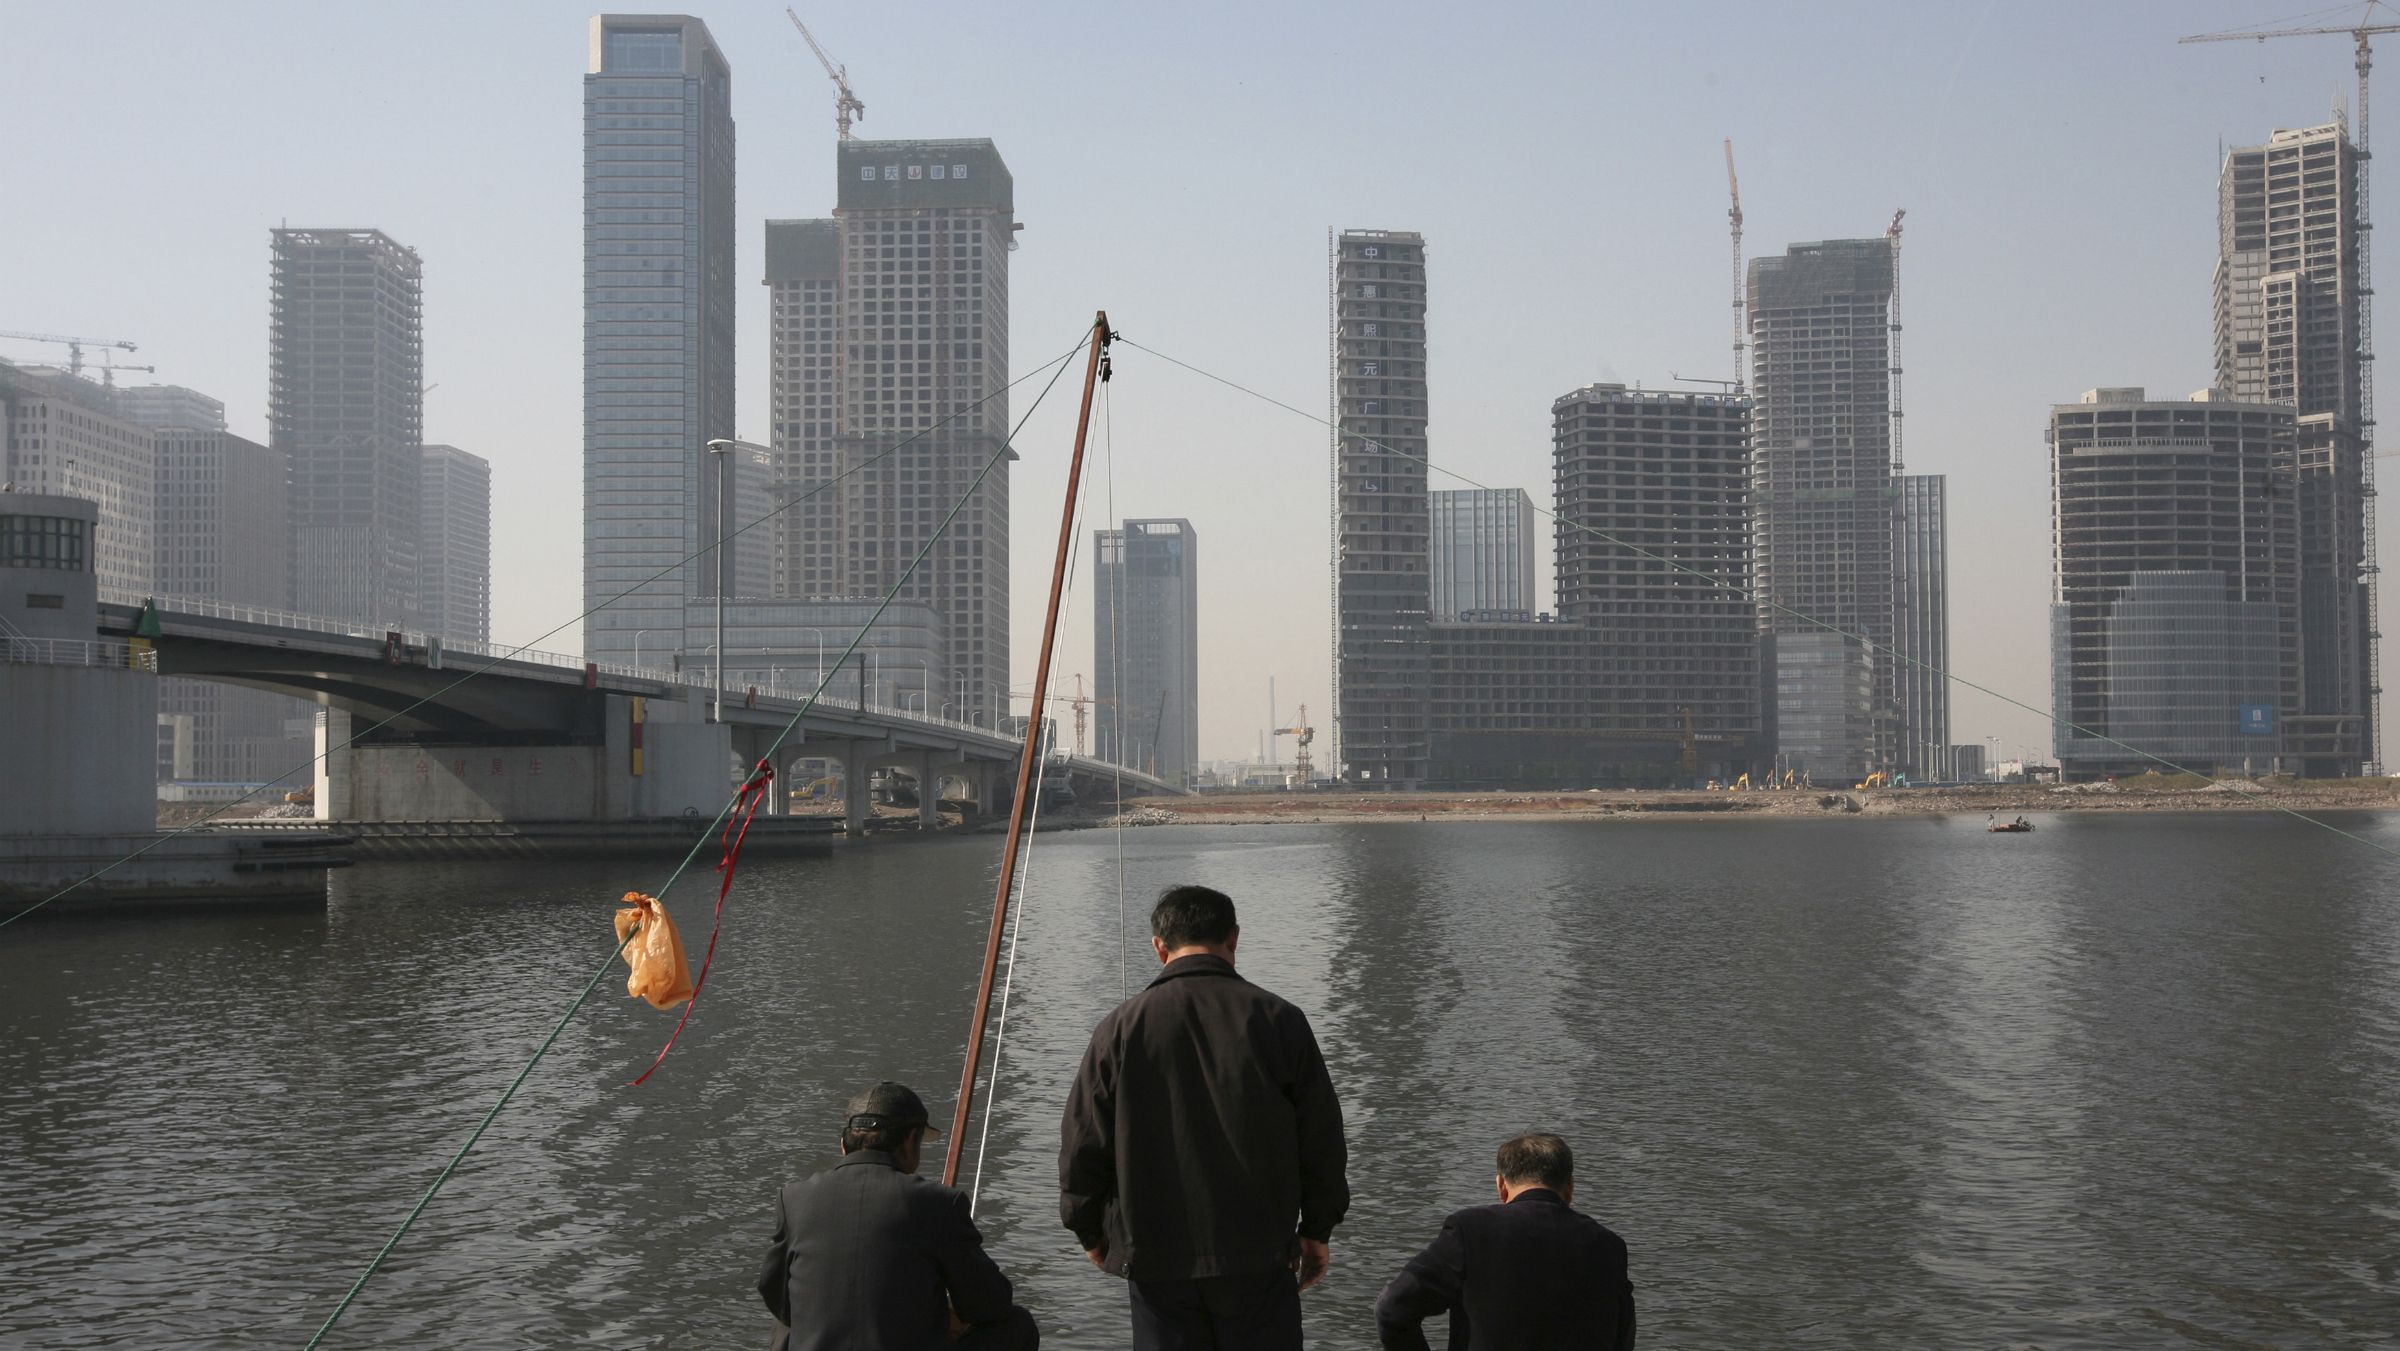 manhattan china tianjing debt ghost town Residents fish with nets on the banks of the Hai River in Tianjin's Binhai New Area, where the government is building its Yujiapu financial center October 23, 2012. The towers in Tianjin's Yujiapu Financial District, and two dozen others on the opposite side of the river, are monuments to the transformation of this once-rundown northern city of 13 million into the country's fastest growing region last year. Picture taken October 23, 2012. REUTERS/Michael Martina